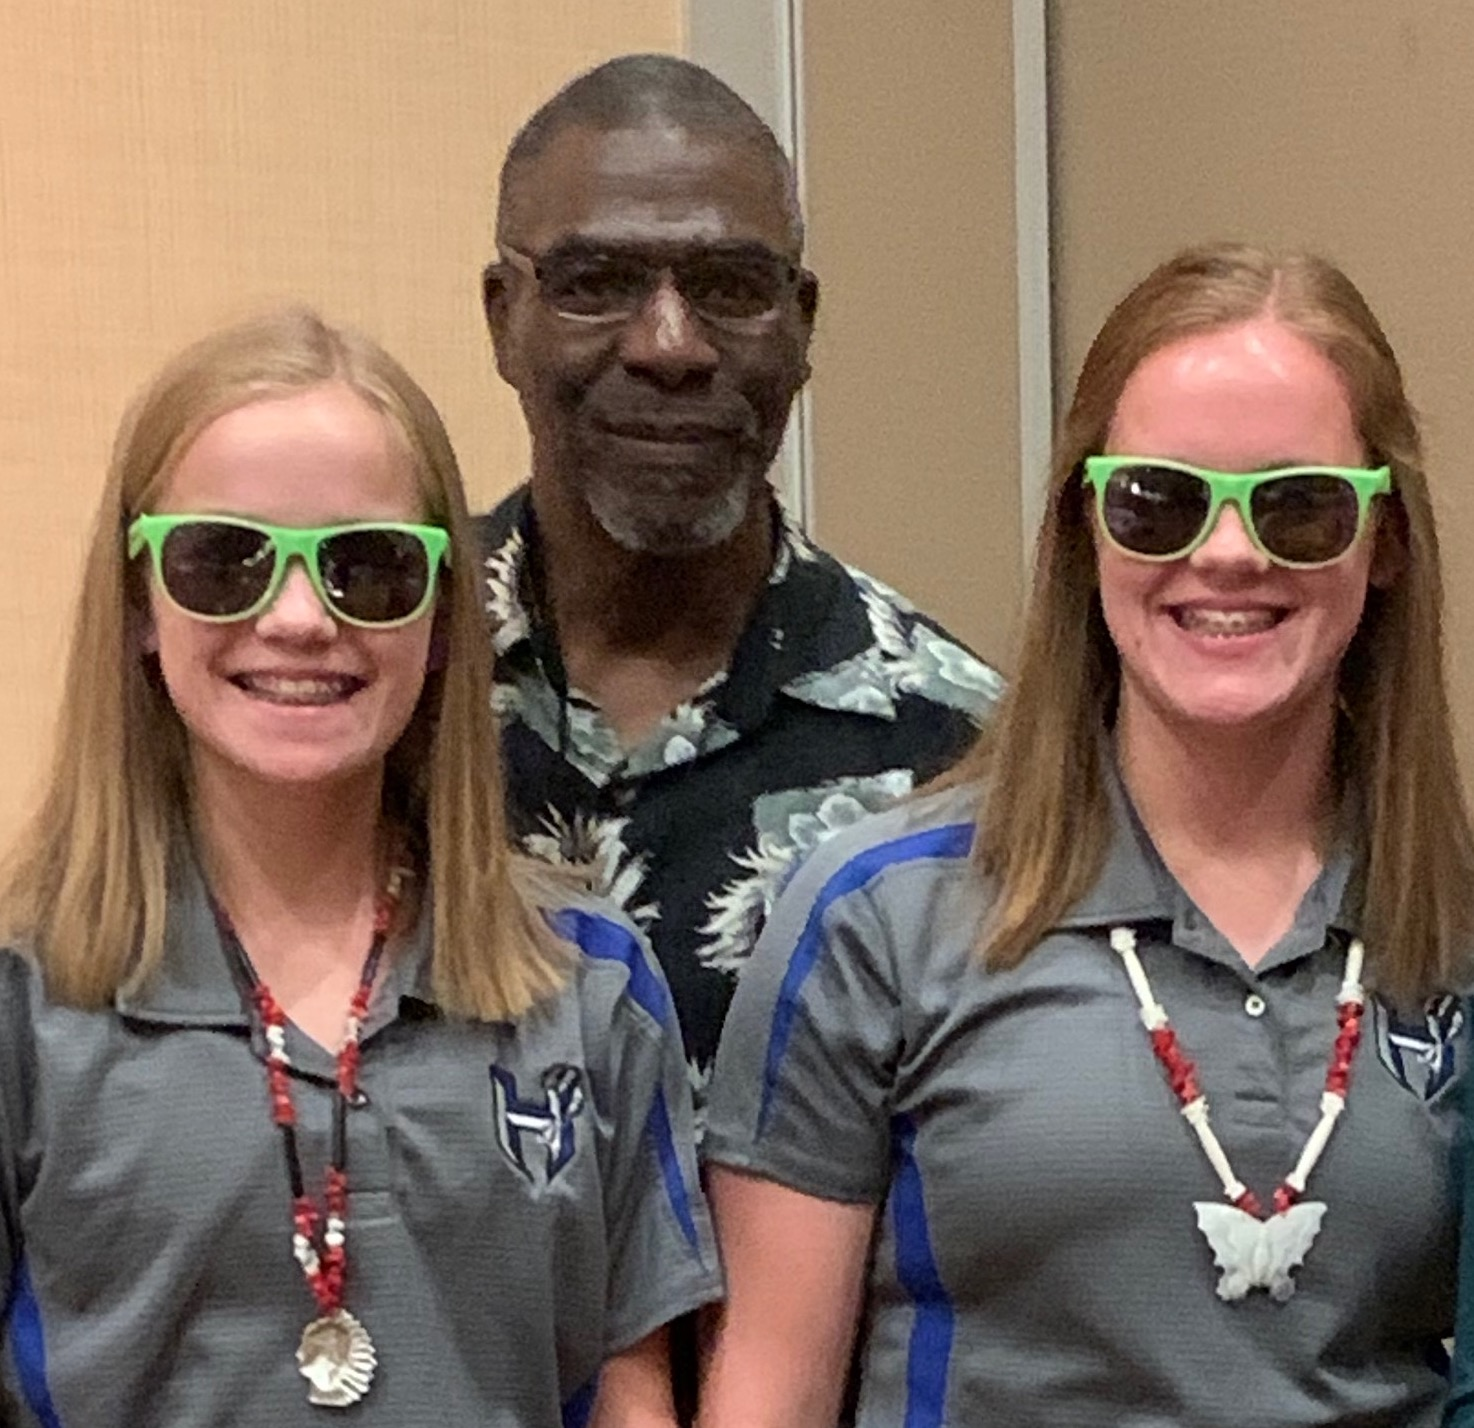 Nate Raynor with two students in lime green sunglasses - the peer choice recognition.